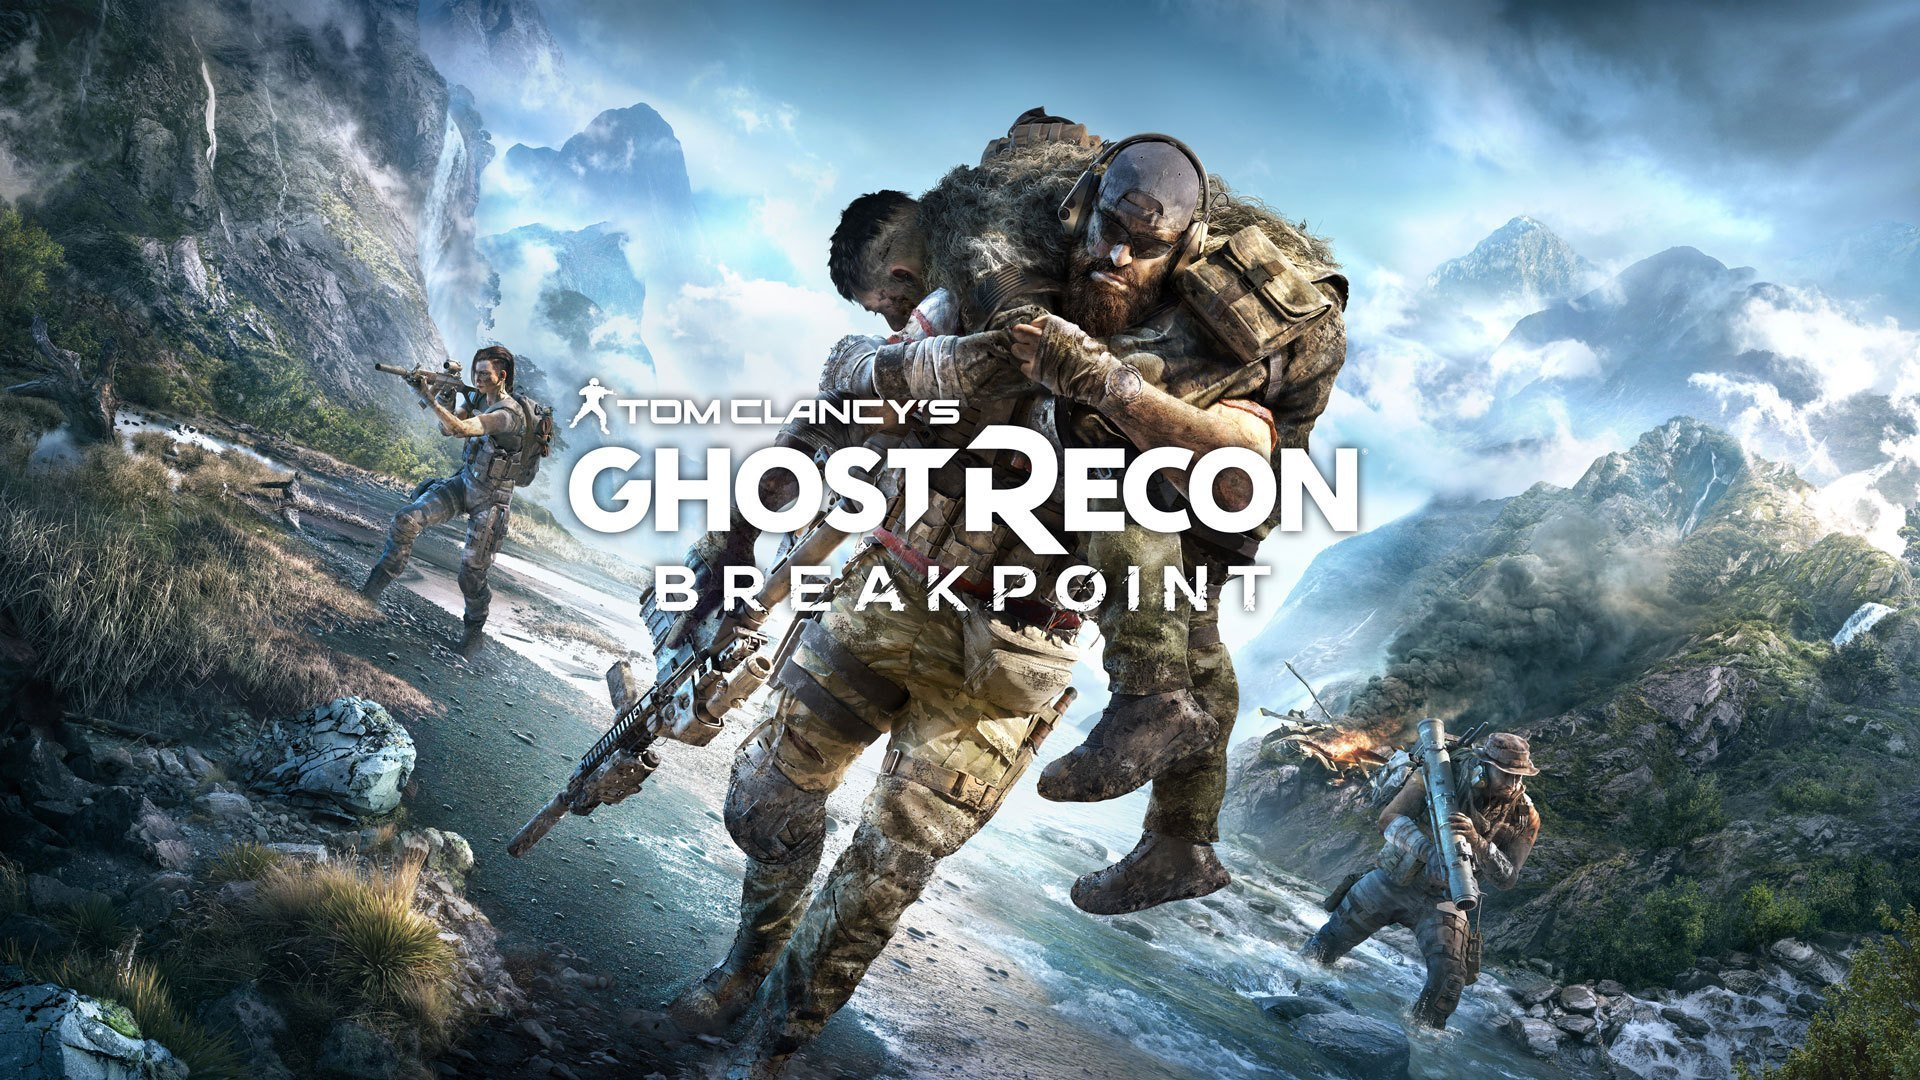 Tom Clancy's Ghost Recon: Breakpoint E3 Ubisoft 2019